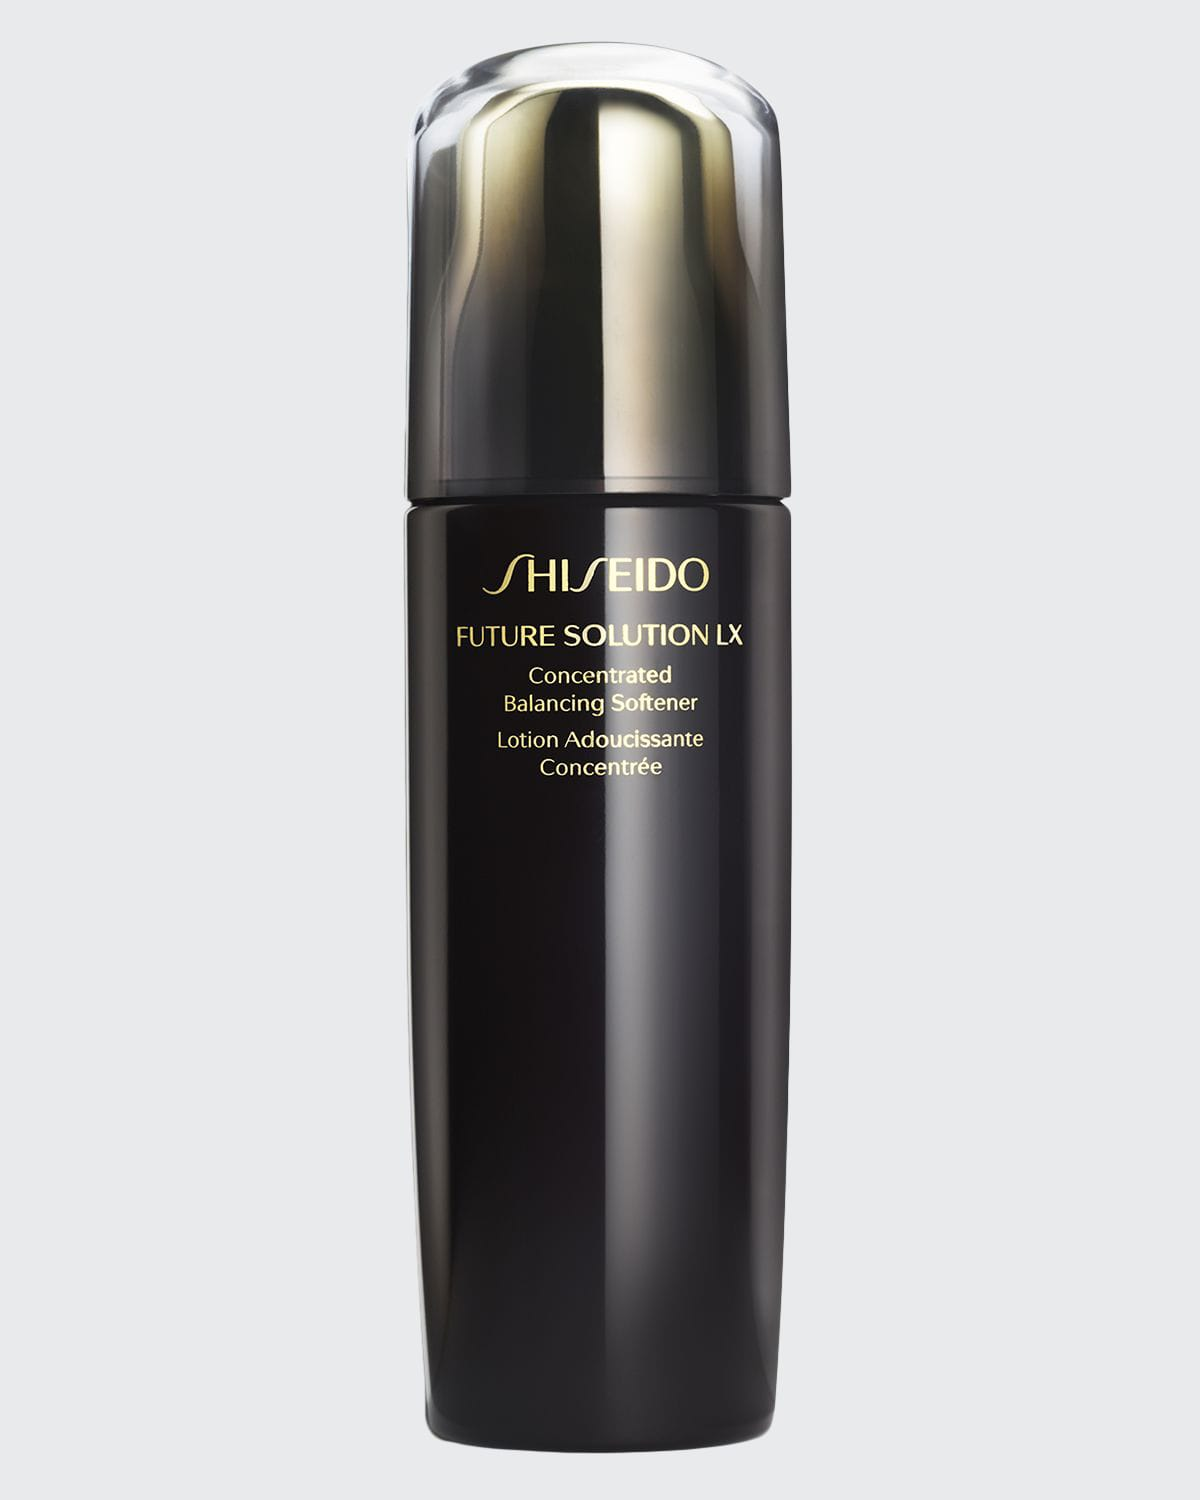 Future Solution LX Concentrated Balancing Softener